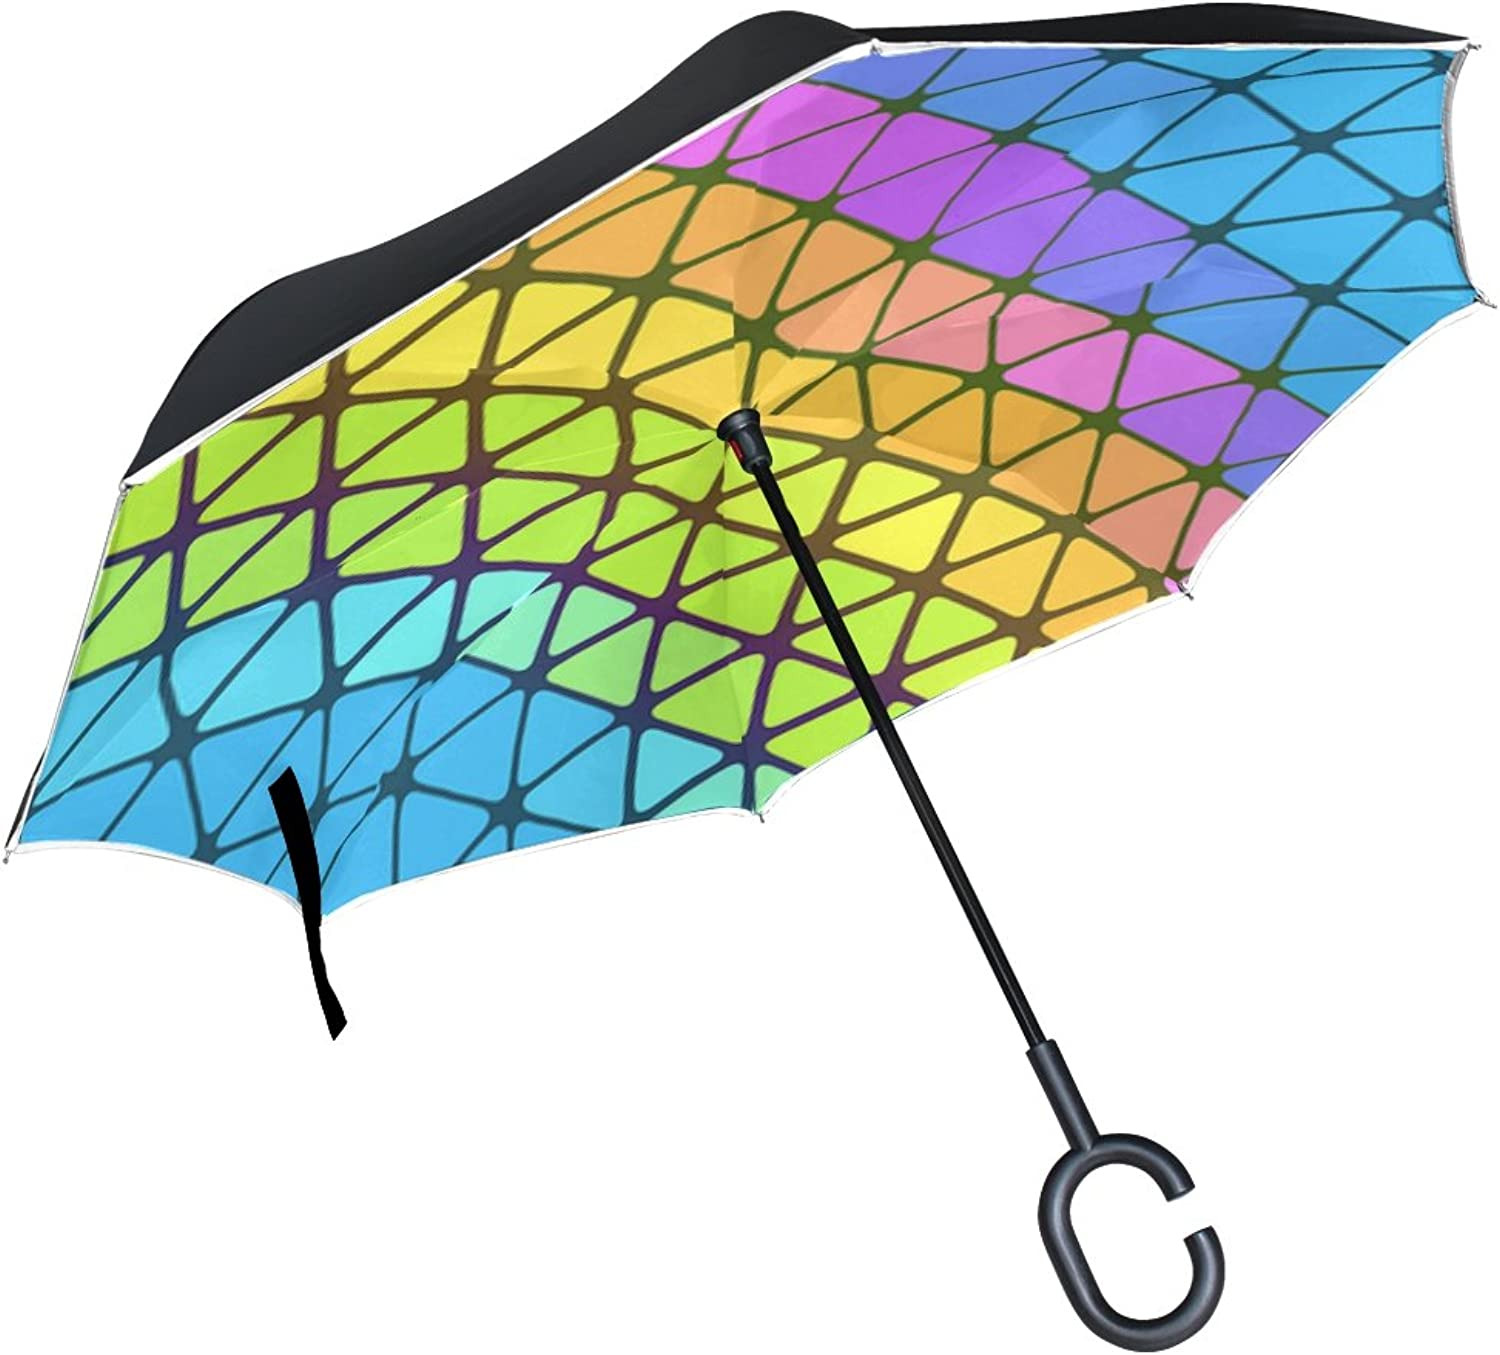 Double Layer Ingreened colorful Pattern Gradient Shapes Triangle Texture Umbrellas Reverse Folding Umbrella Windproof Uv Predection Big Straight Umbrella for Car Rain Outdoor with CShaped Handle